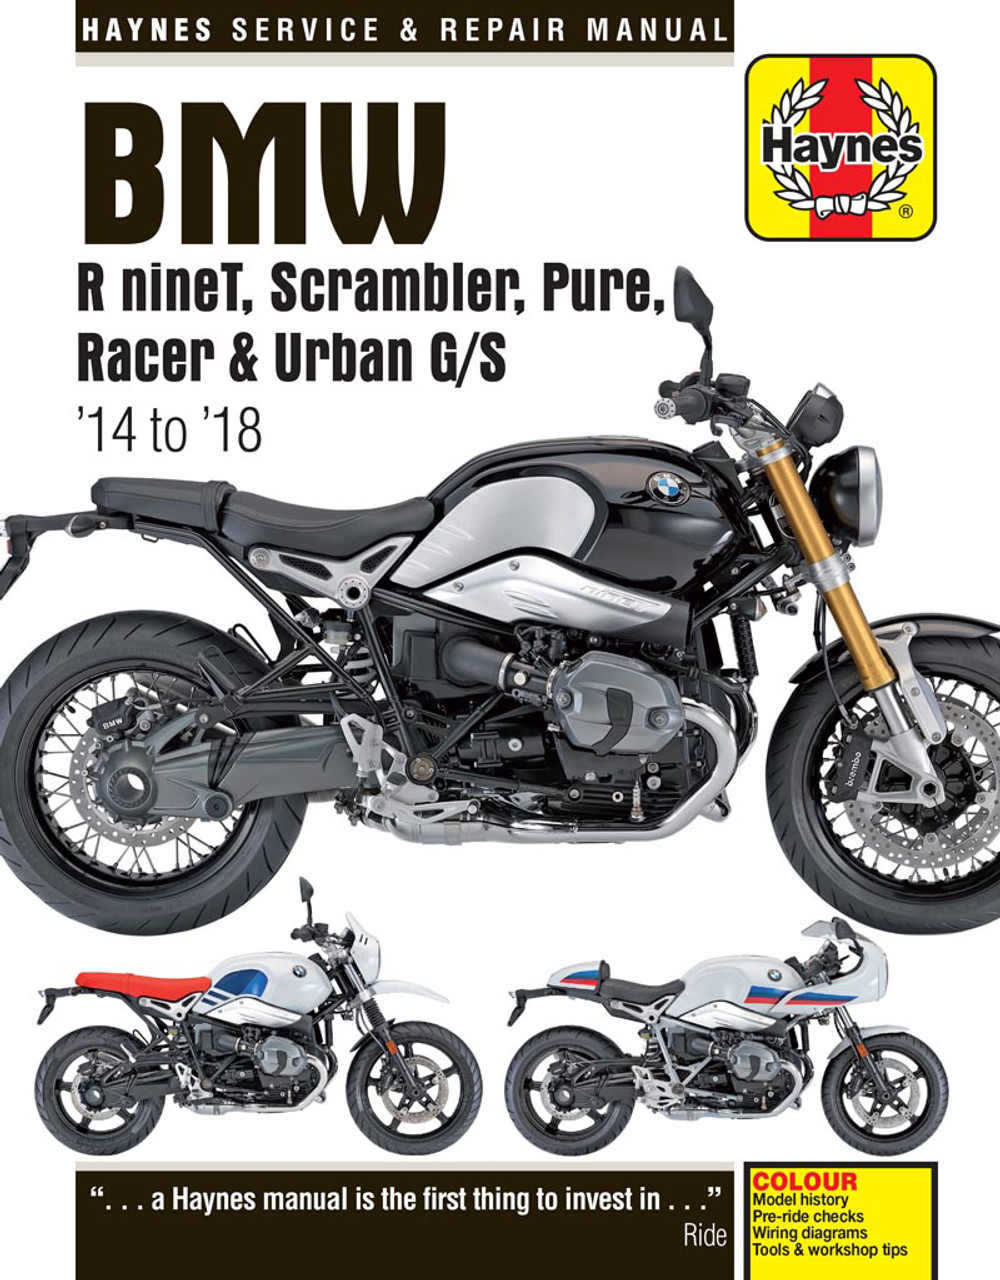 bmw r ninet, scrambler, pure, racer & urban g/s 2014 - 2018 workshop manual  (9781785214028)